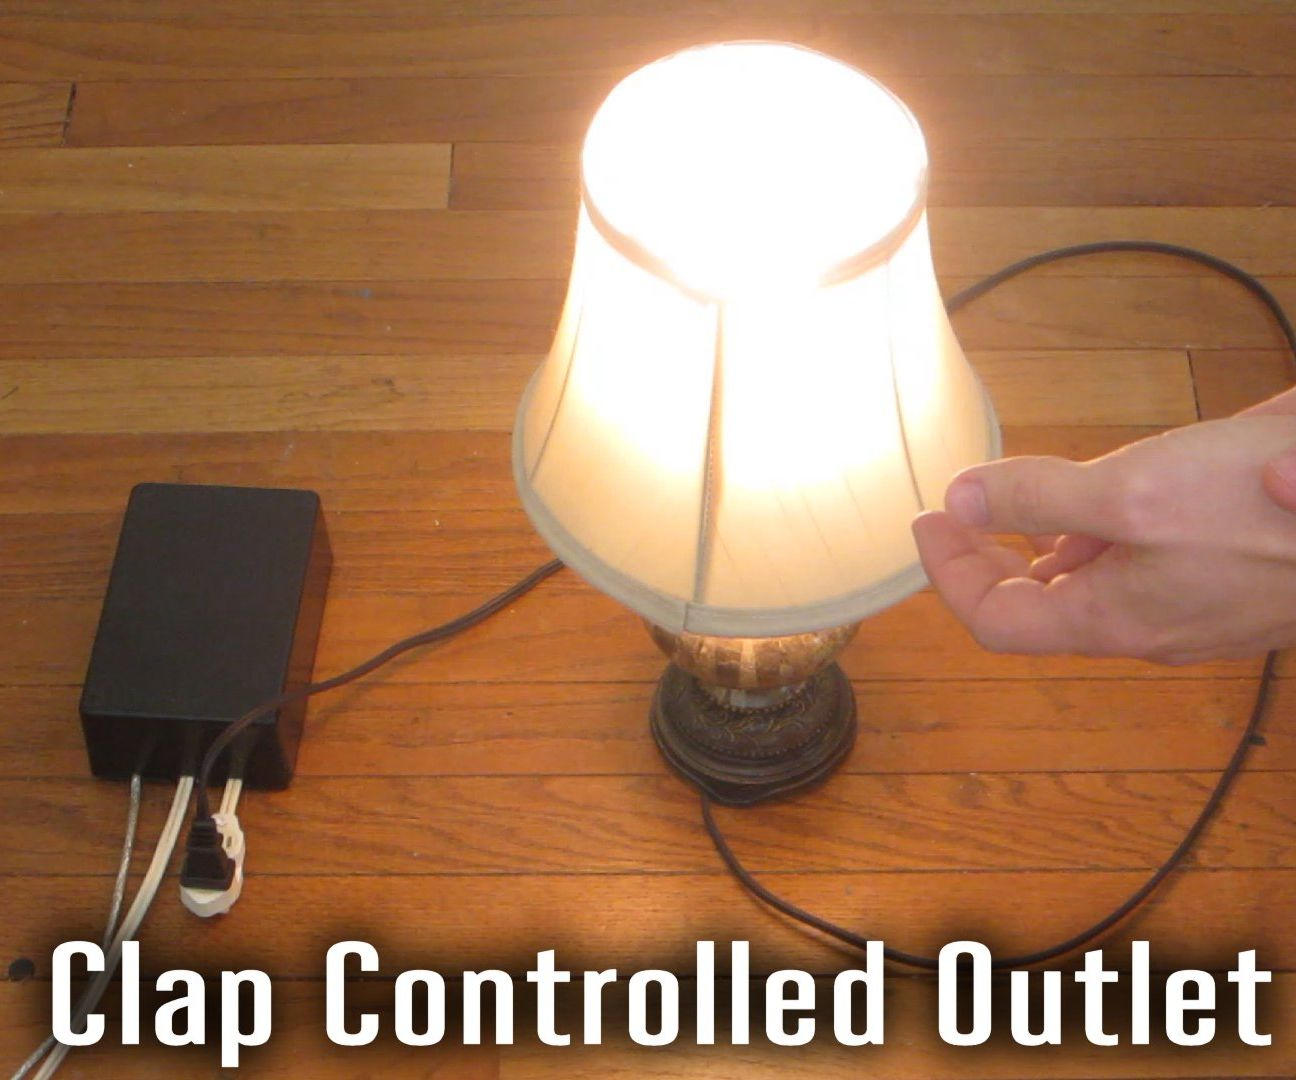 Sound Activated Outlet  Steps With Pictures - Clap sensitive on off relay